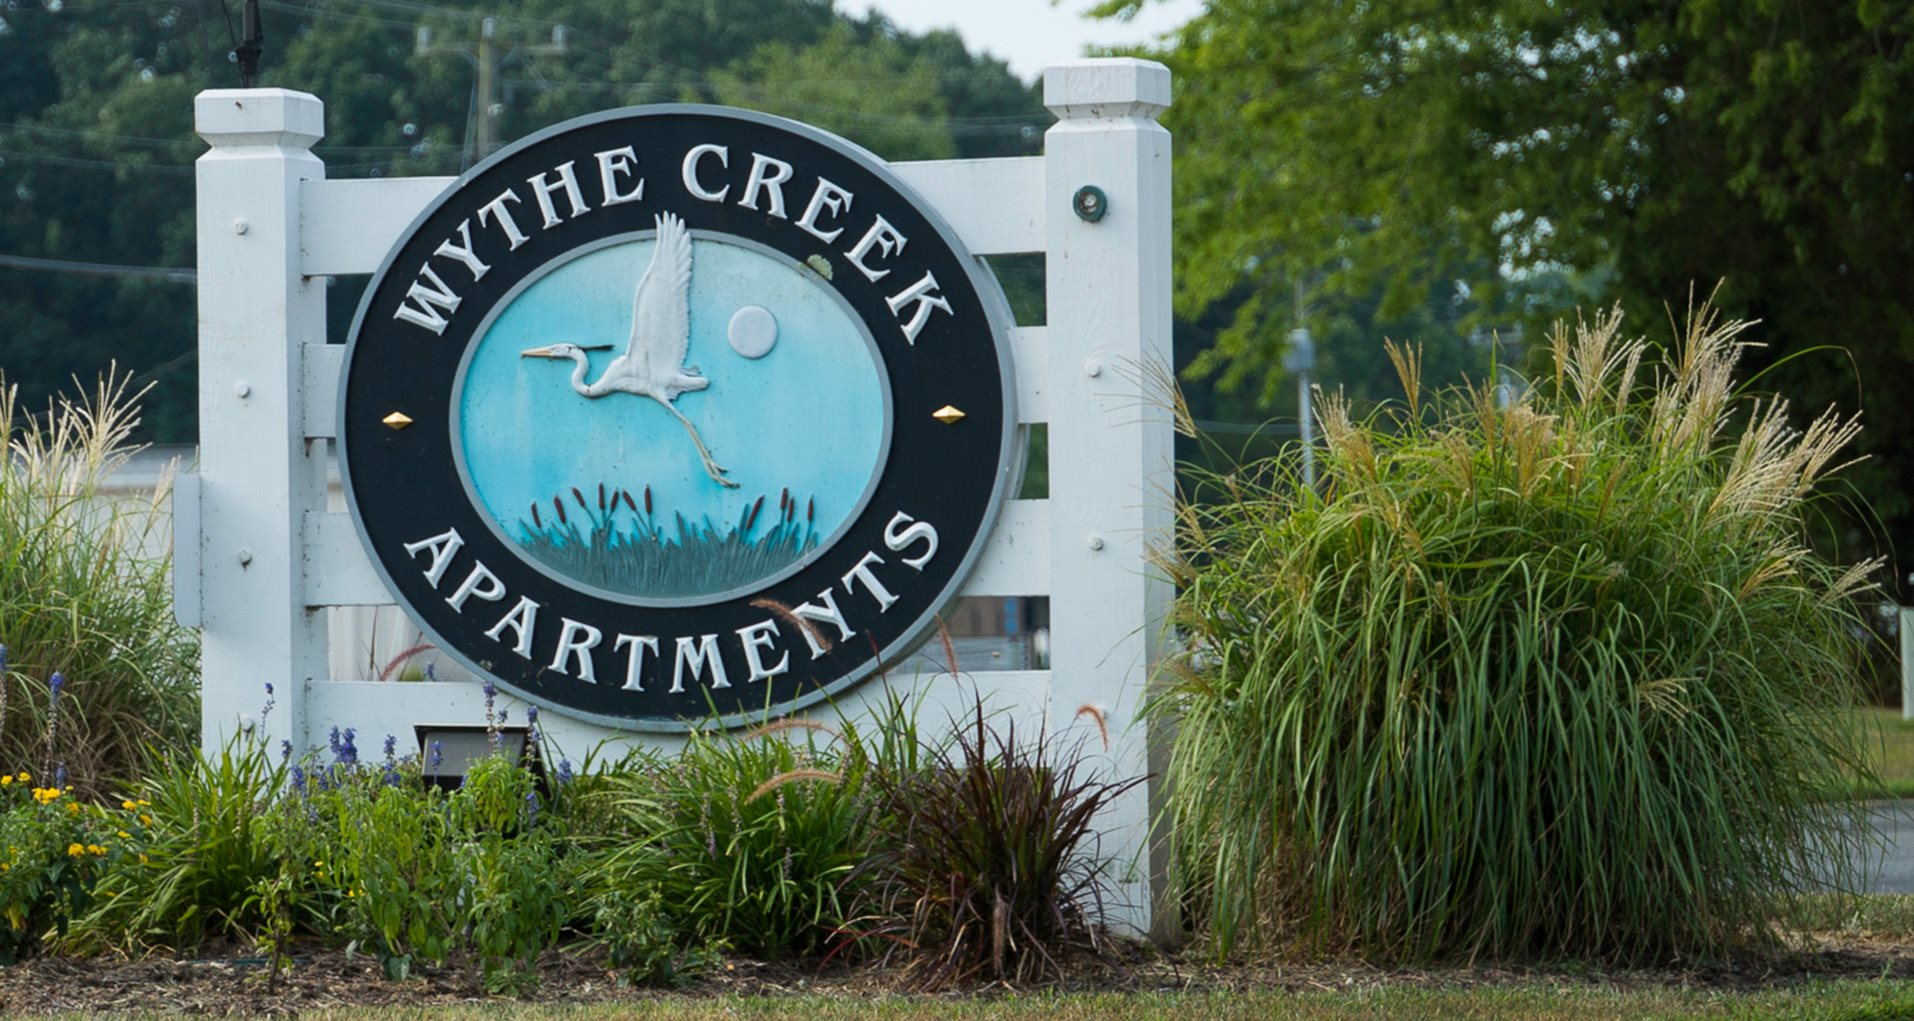 Sign for Wythe Creek Apartments